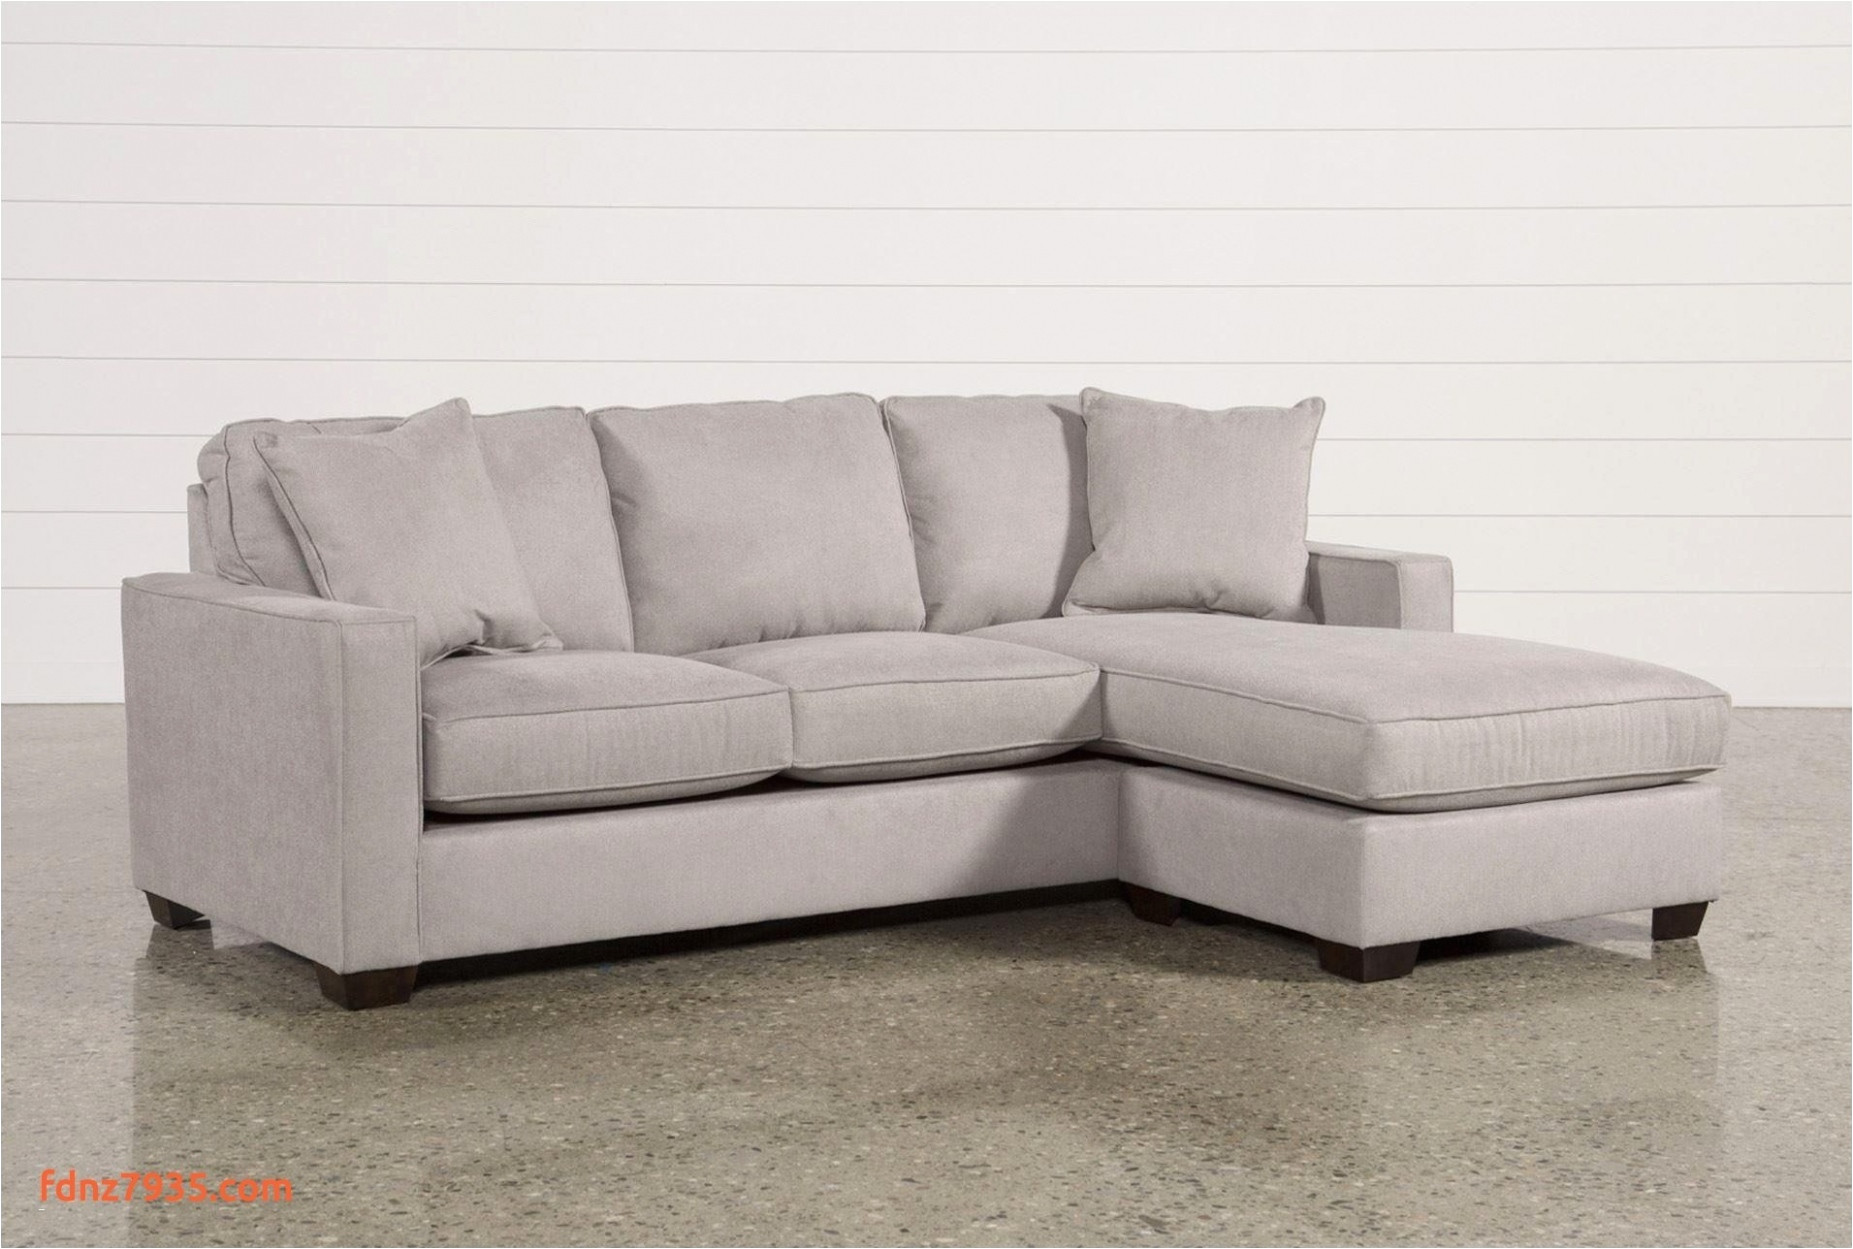 corner sofa frame plans awesome silver couch 0d tags amazing elegant silver couch marvelous lovely of